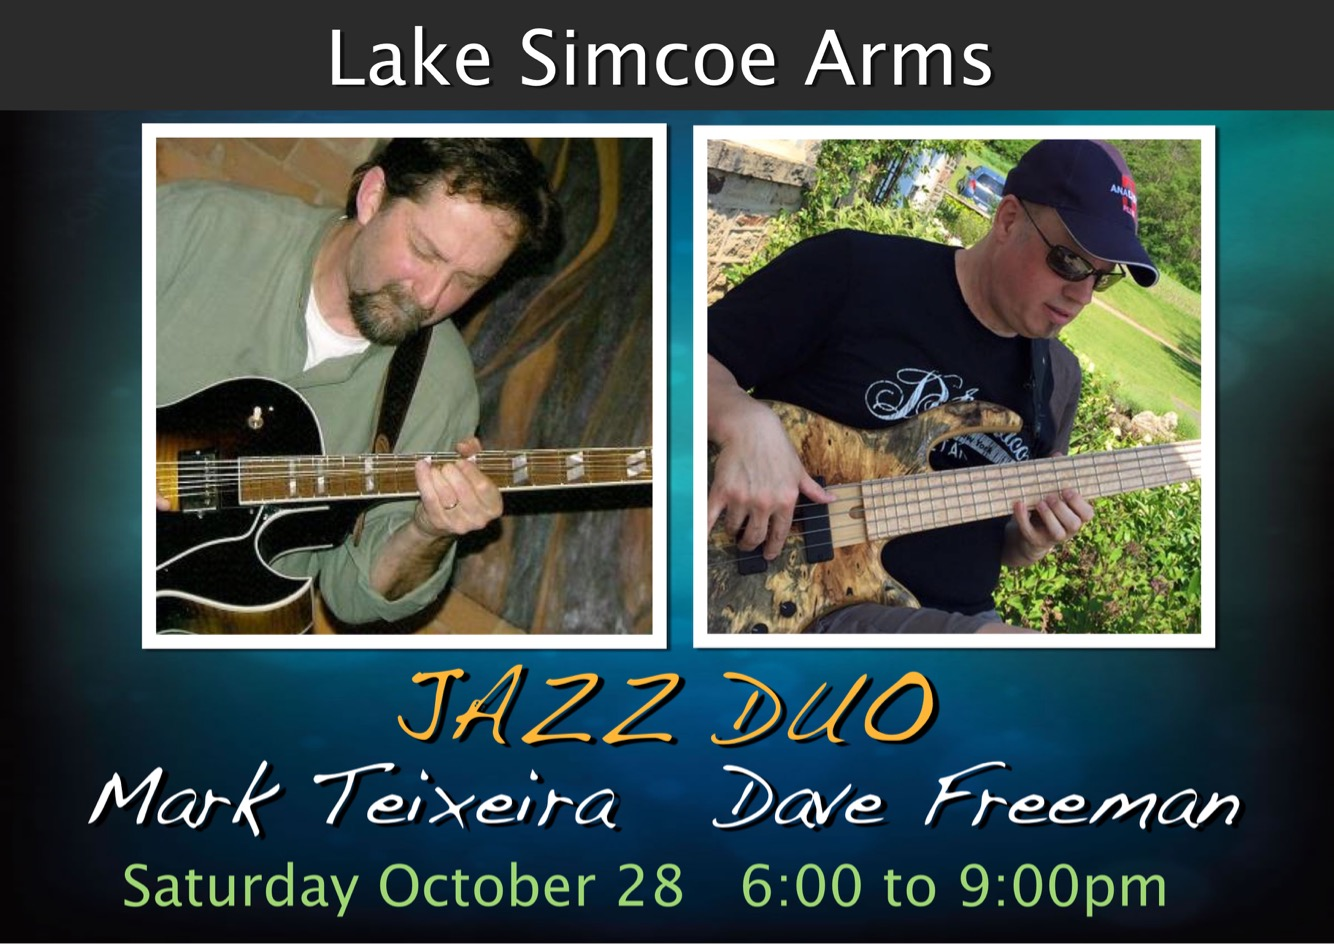 Saturday, October 28th 6-9pm  Jazz Night with Mark Teixeira & Dave Freeman